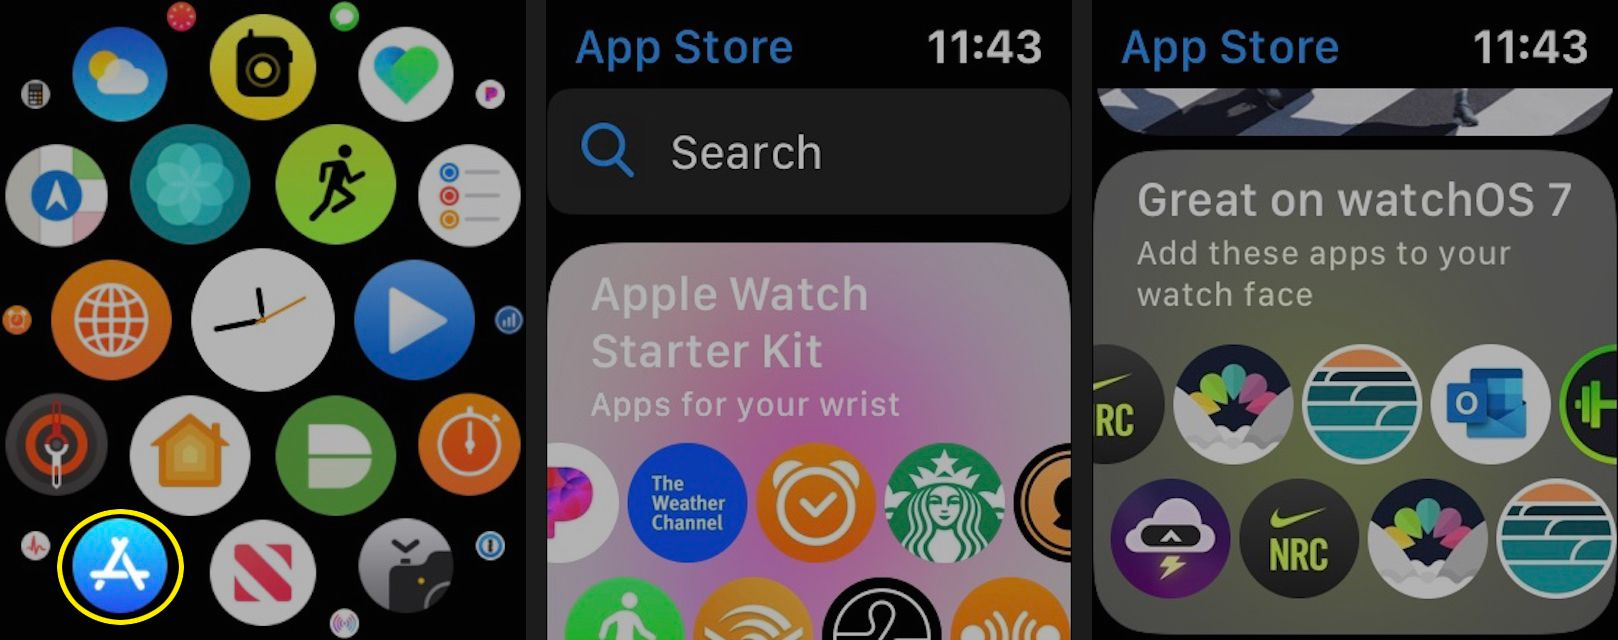 Open the App Store on your Apple Watch to see featured apps